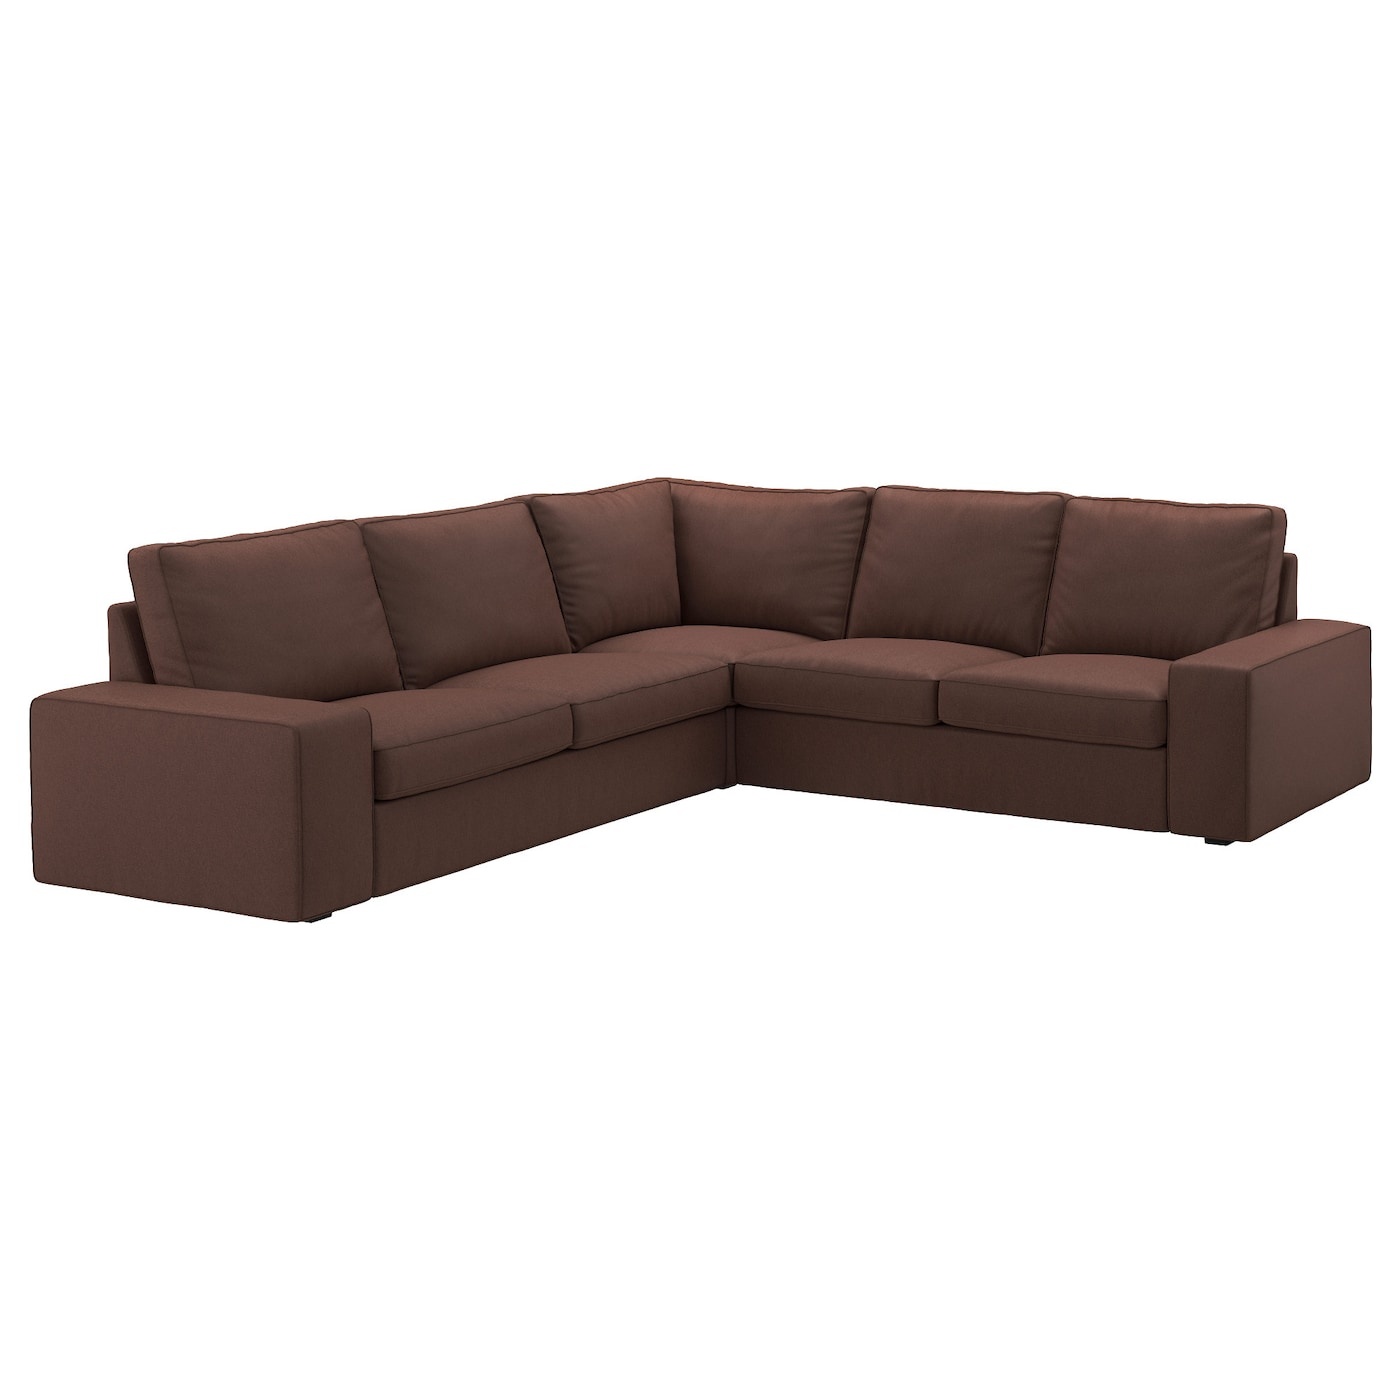 Kivik corner sofa 2 2 borred dark brown ikea for Ikea corner sofa